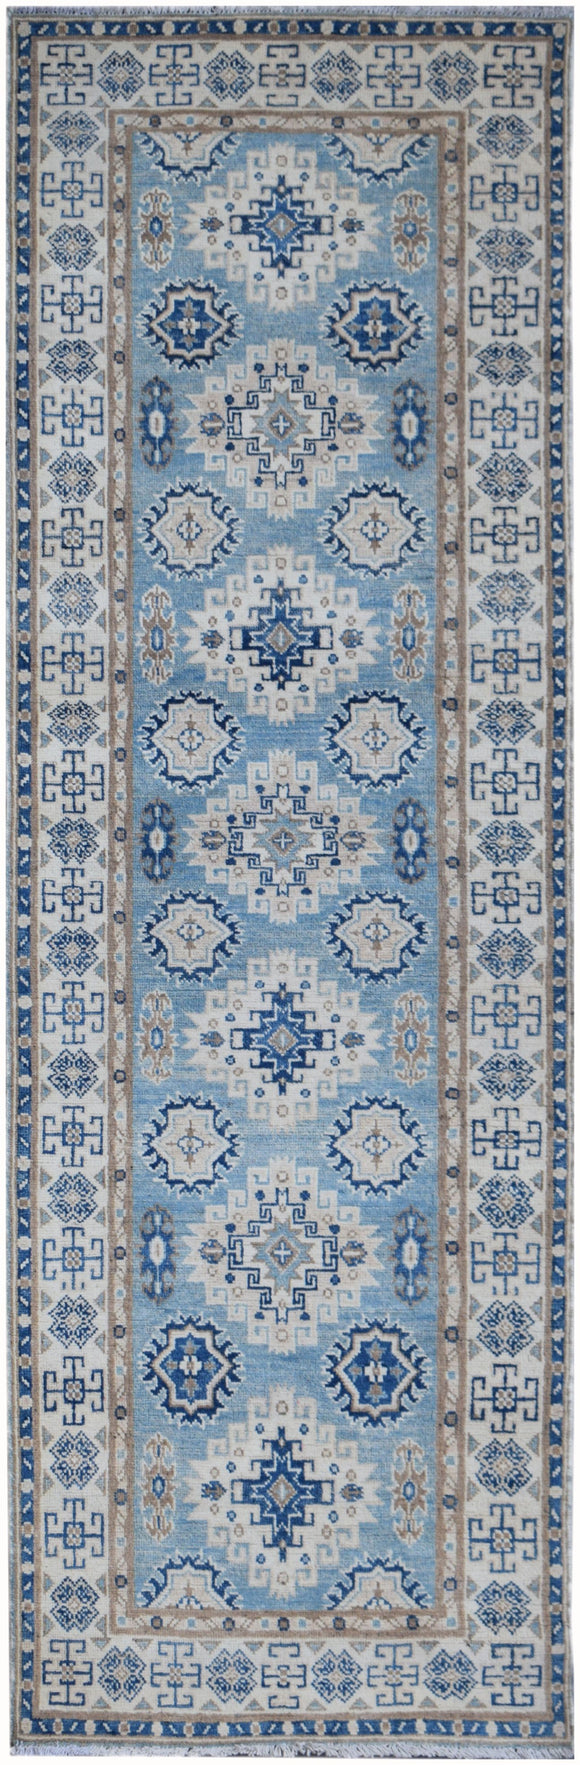 Handmade Sultan Collection Hallway Runner | 238 x 79 cm | 7'10